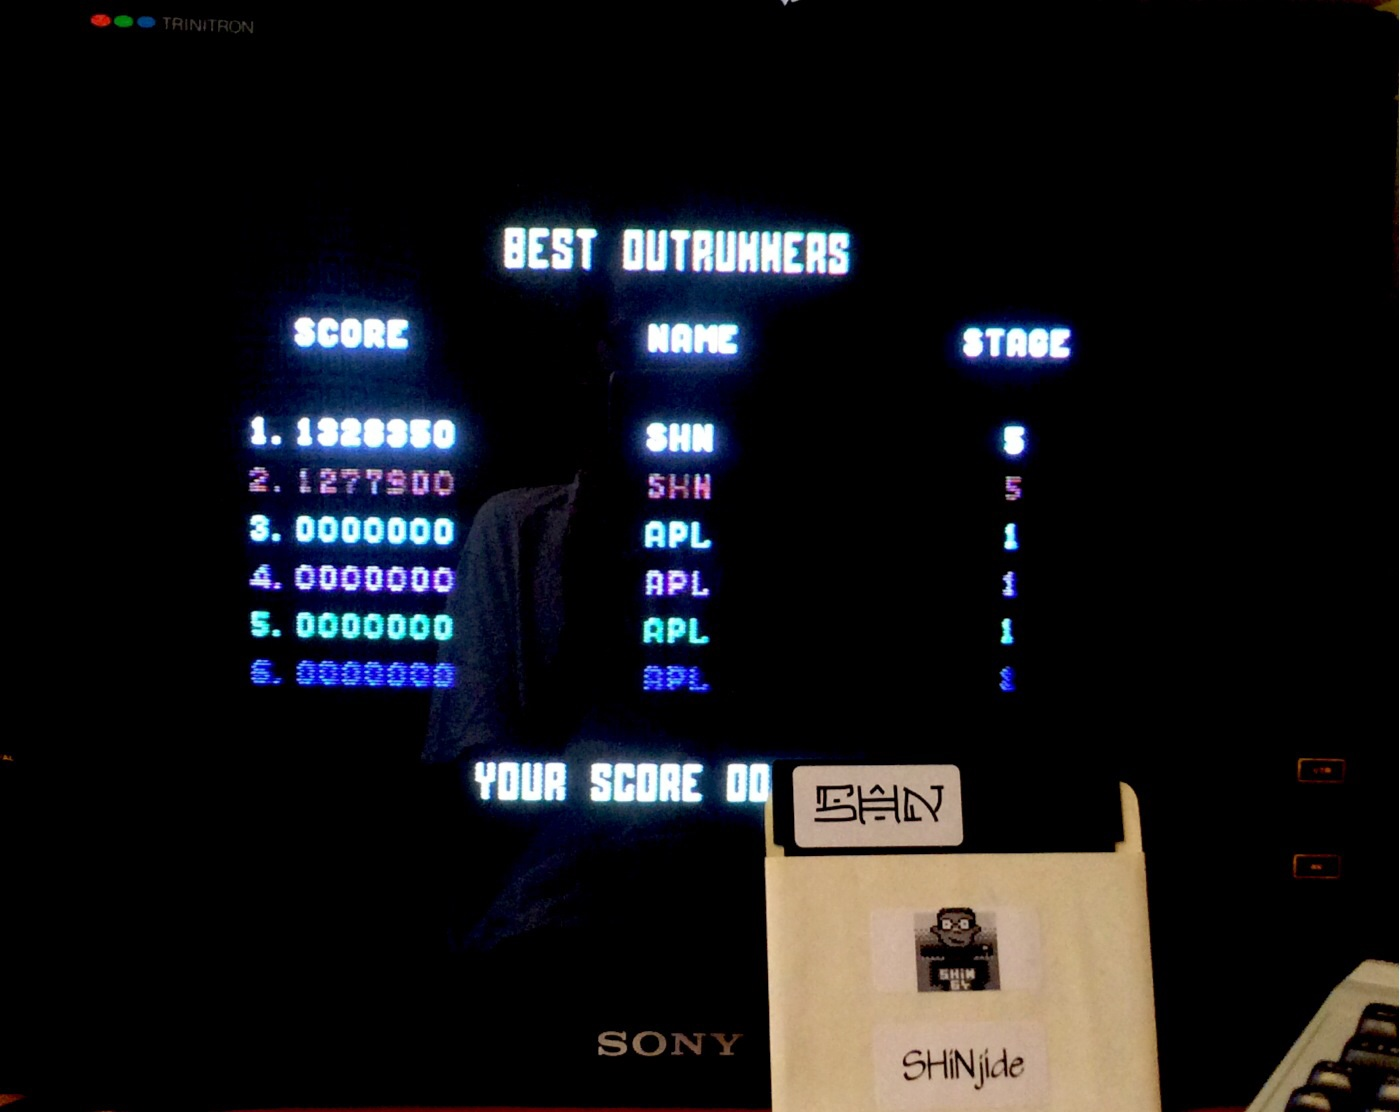 Outrun: Course A 1,328,350 points